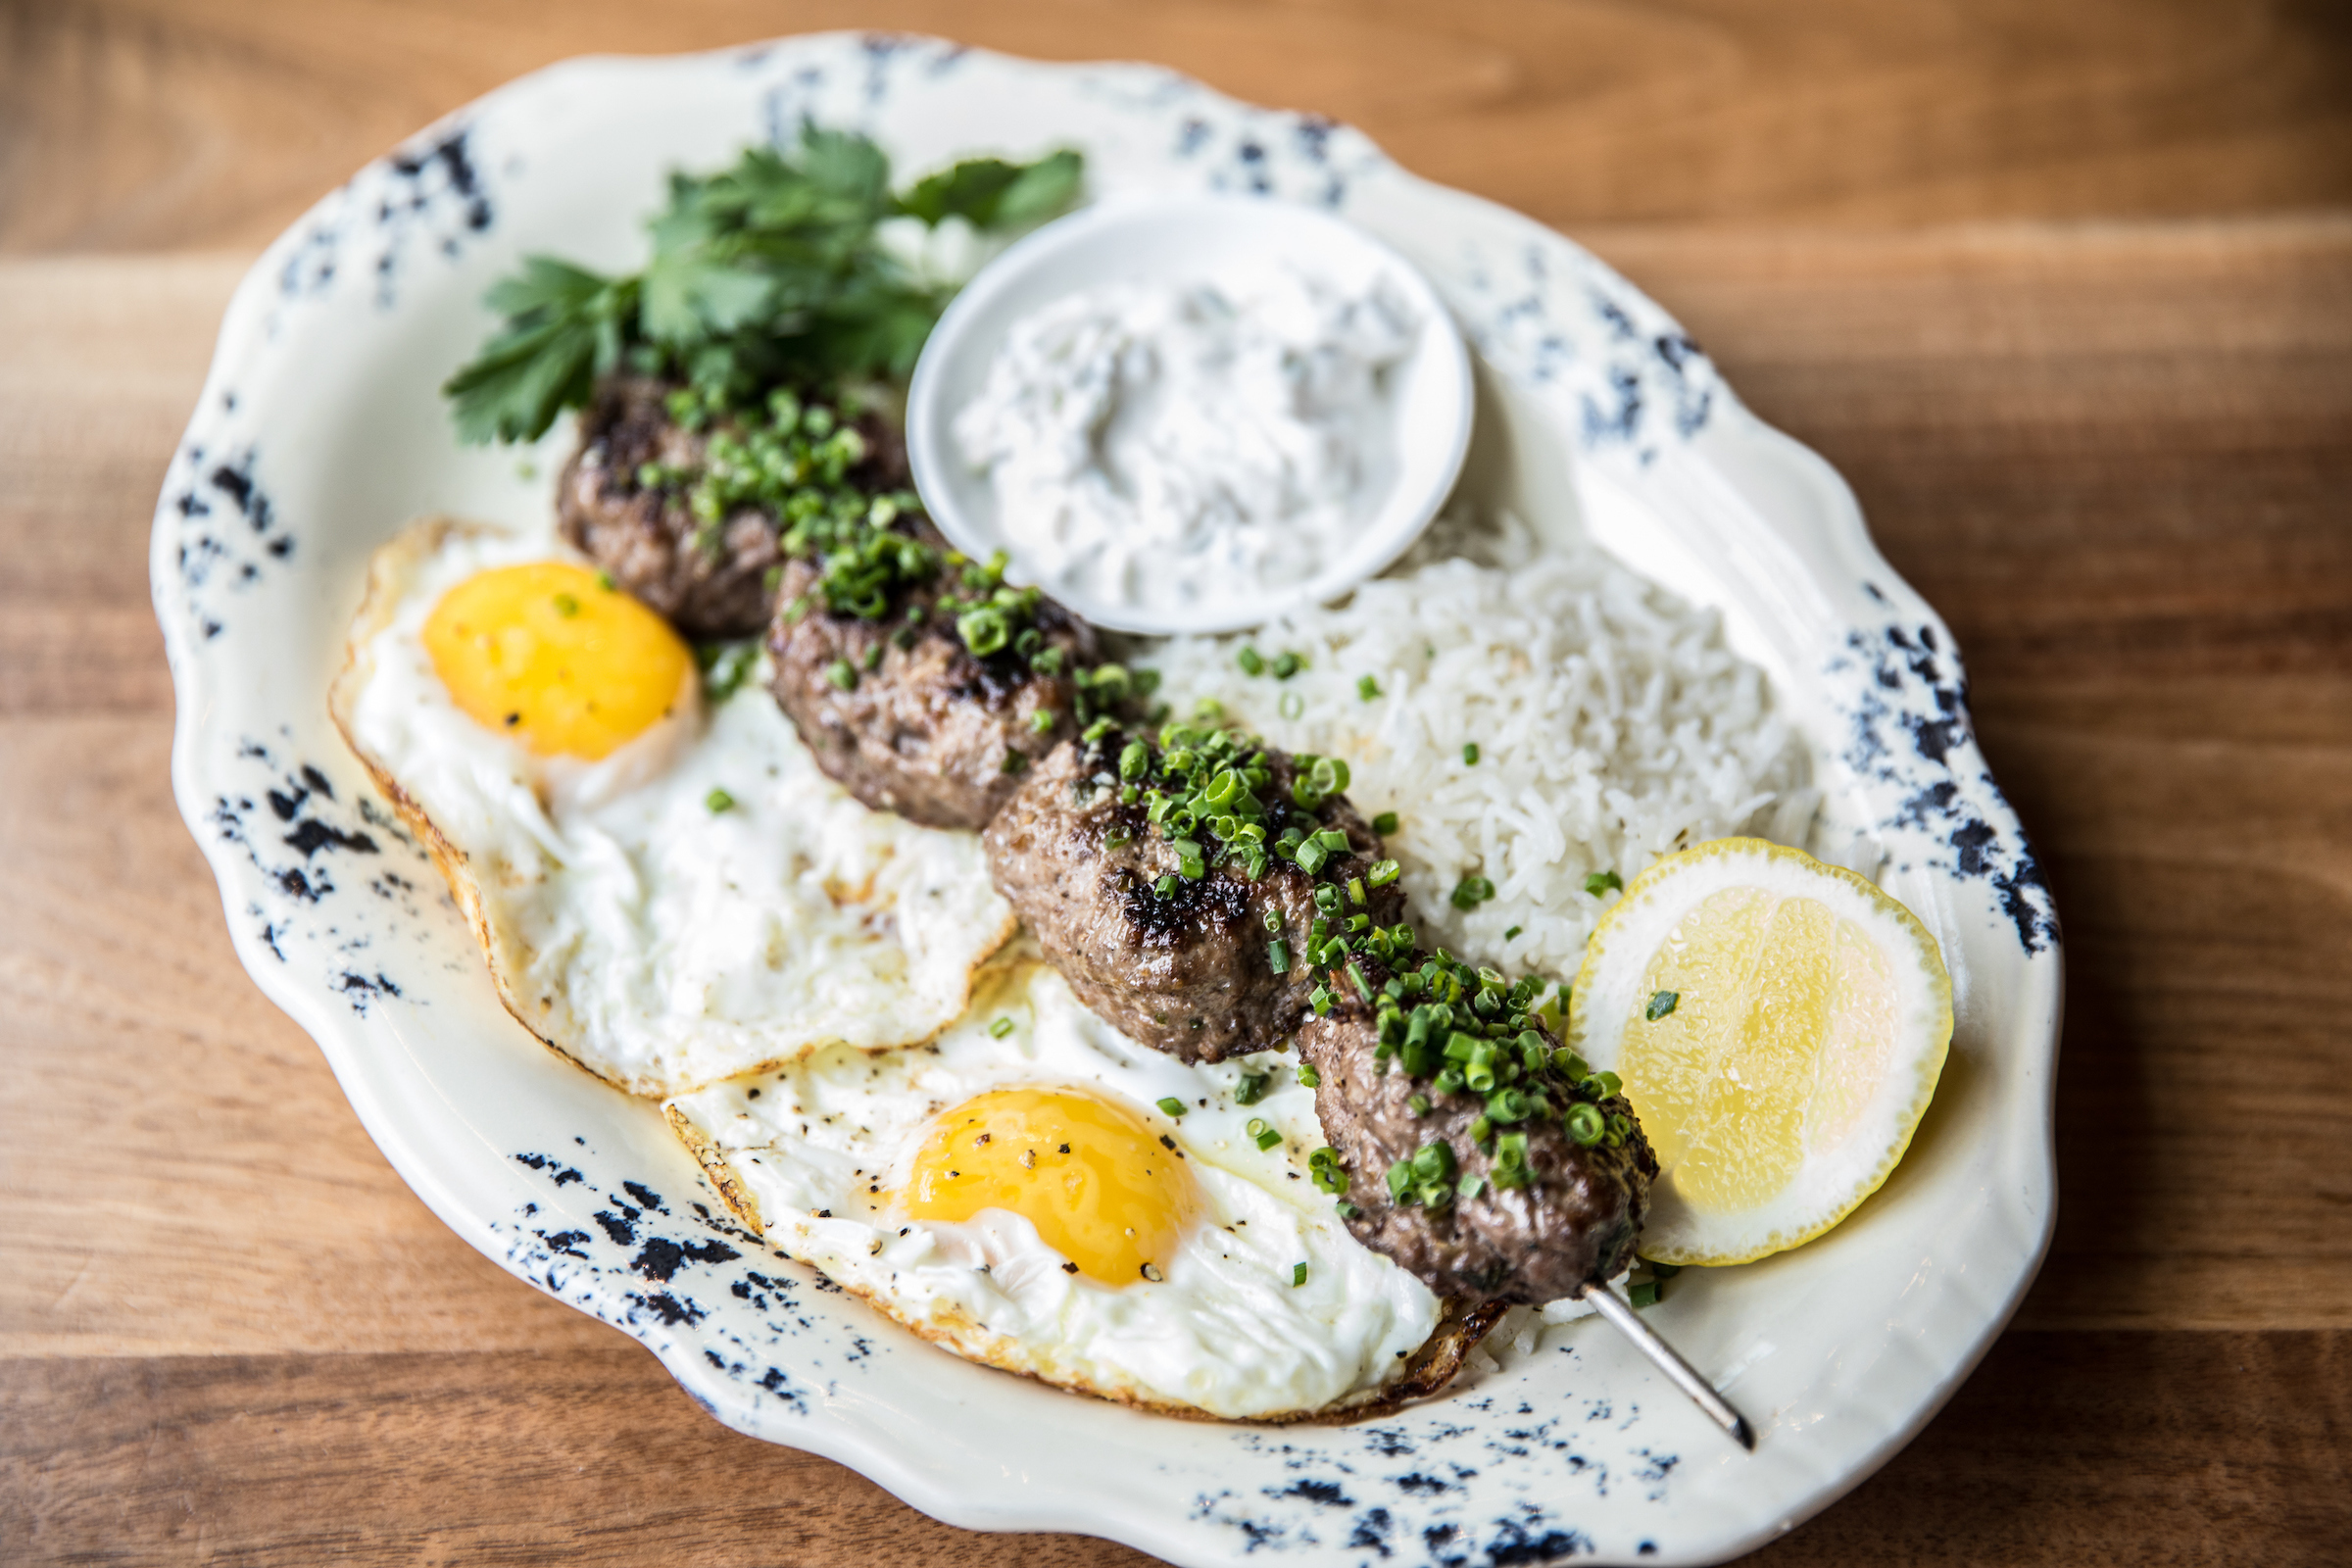 On a beautiful middle-eastern colored platter sits 2 egg with kefta, rice, and tzatiki